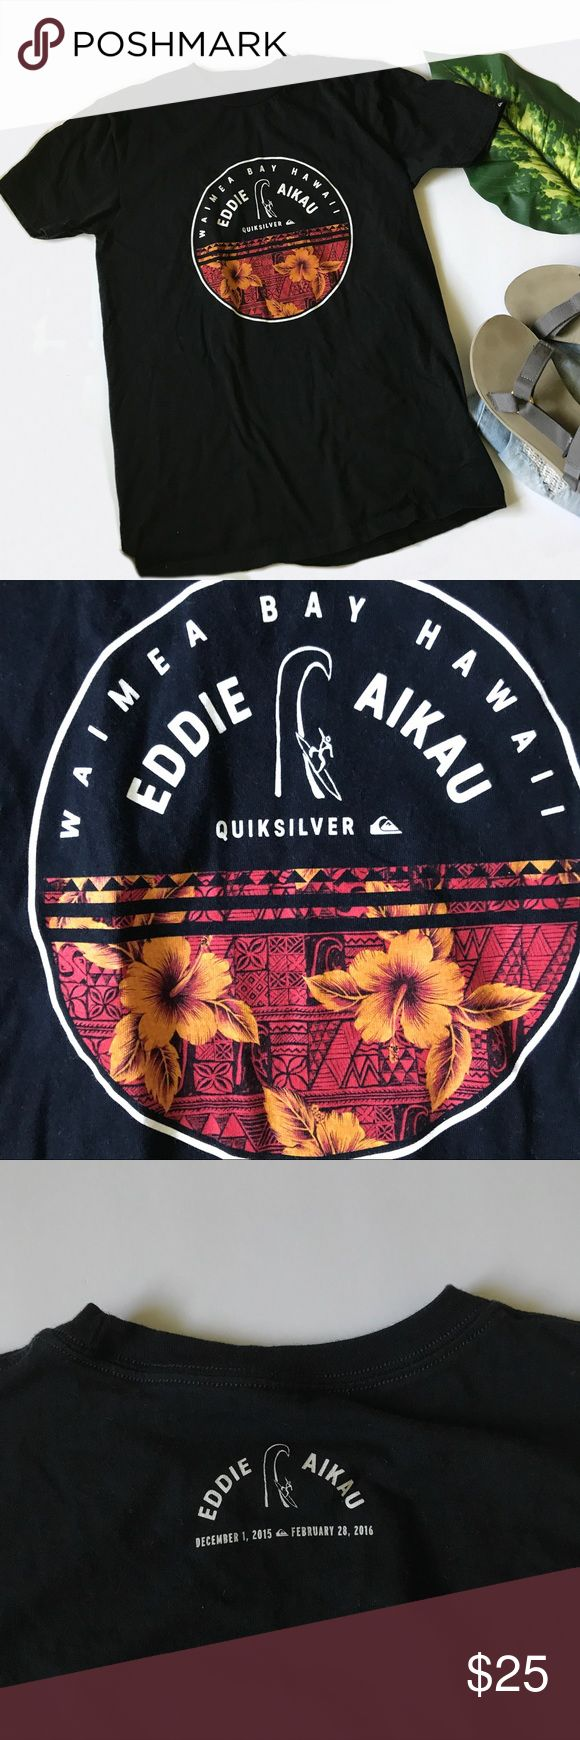 Quicksilver Tropical Black Tee •Male's quicksilver tshirt. Also fits women. Never worn and in perfect brand new condition. • Size Medium  •Waimea Bay Hawaii Surf Competition , Rare in memory of surfer Eddie Aikau.   • Will be packaged and shipped within one day from a loving home in CA • Bundle and save 10%• Offers and Questions are always welcome!•   Quiksilver Shirts Tees - Short Sleeve